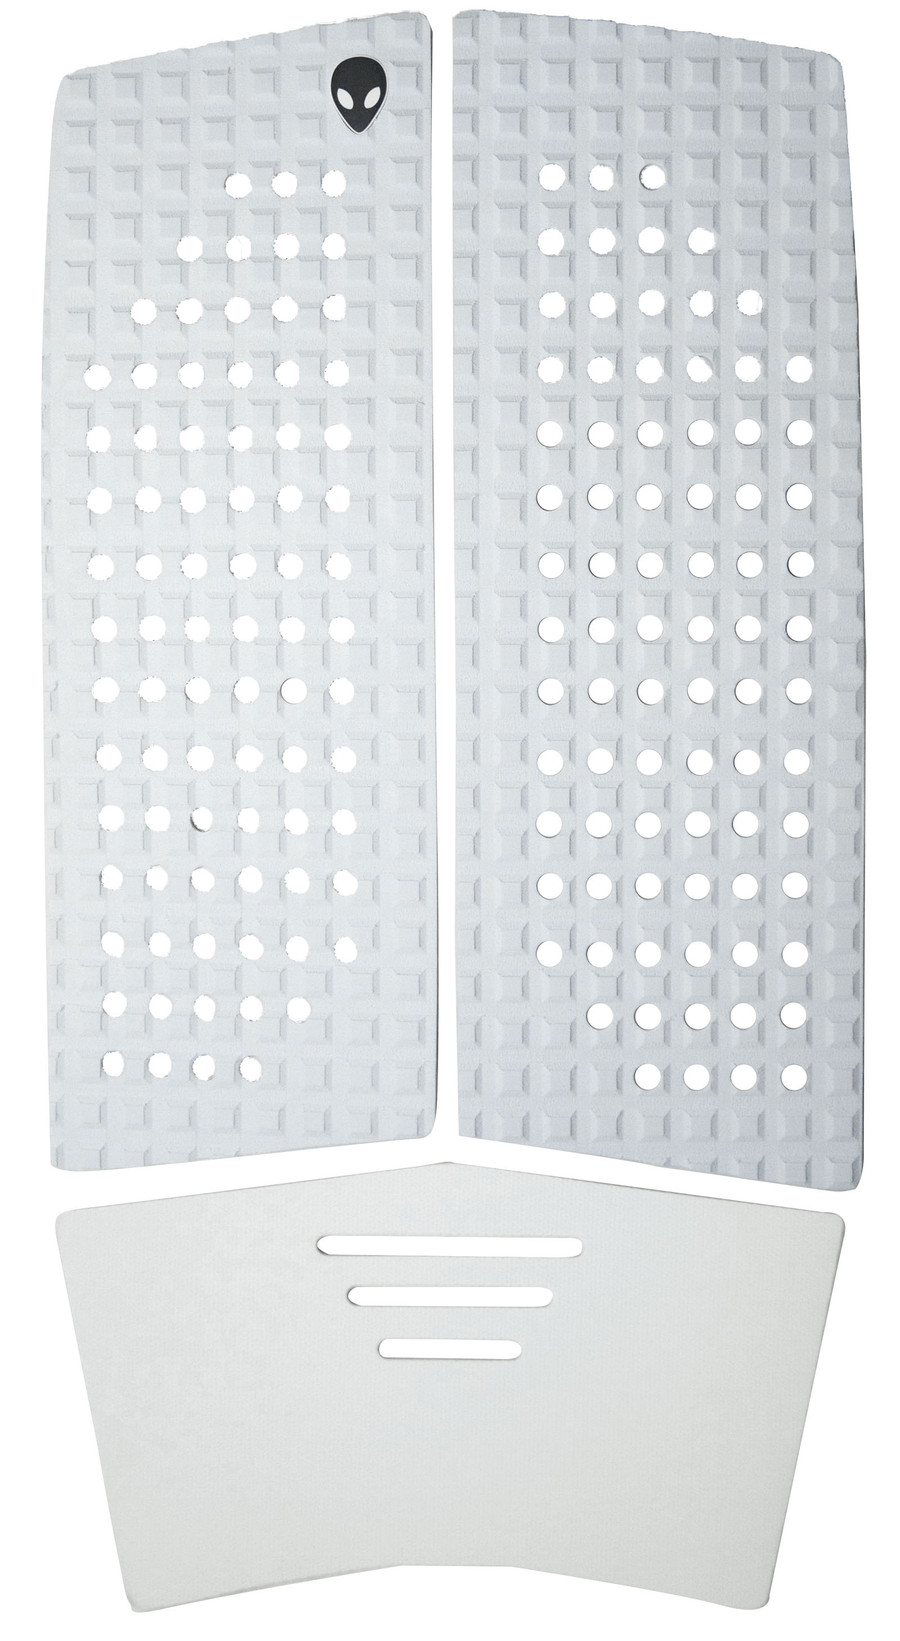 3 piece white front foot traction